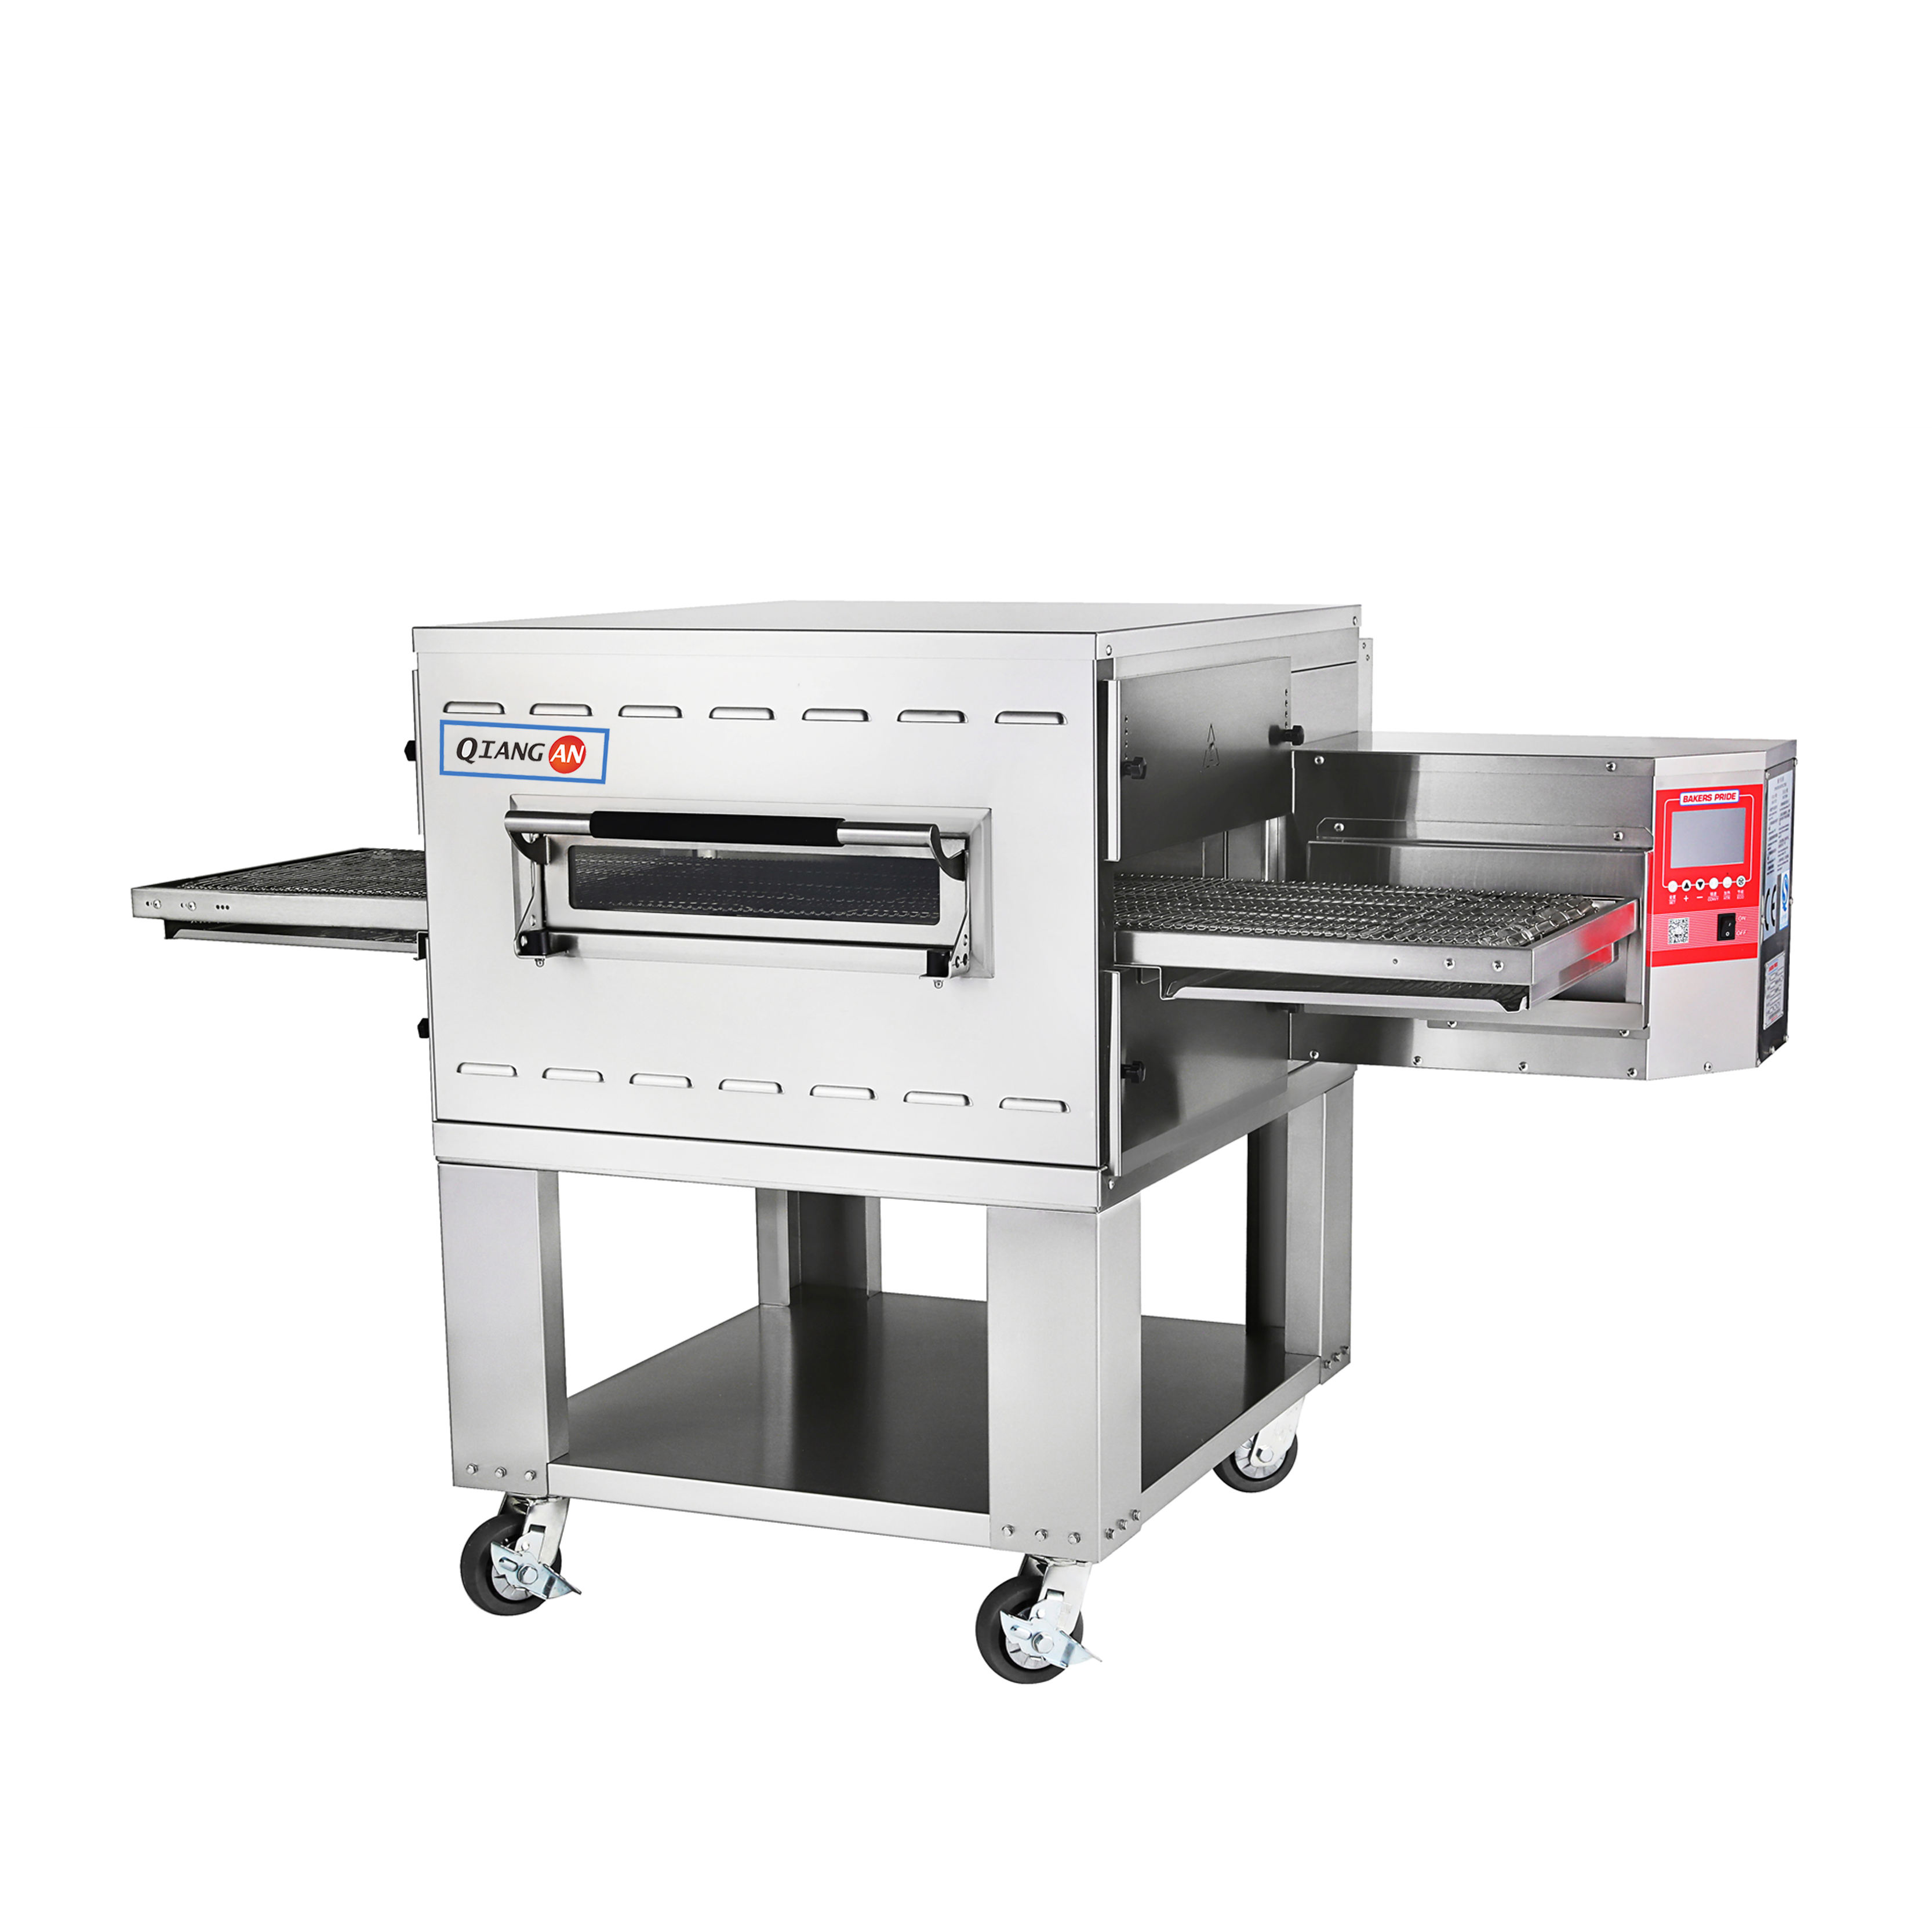 "H1832 freestanding electric 18"" wide belt coneyor pizza oven with impingement technology"